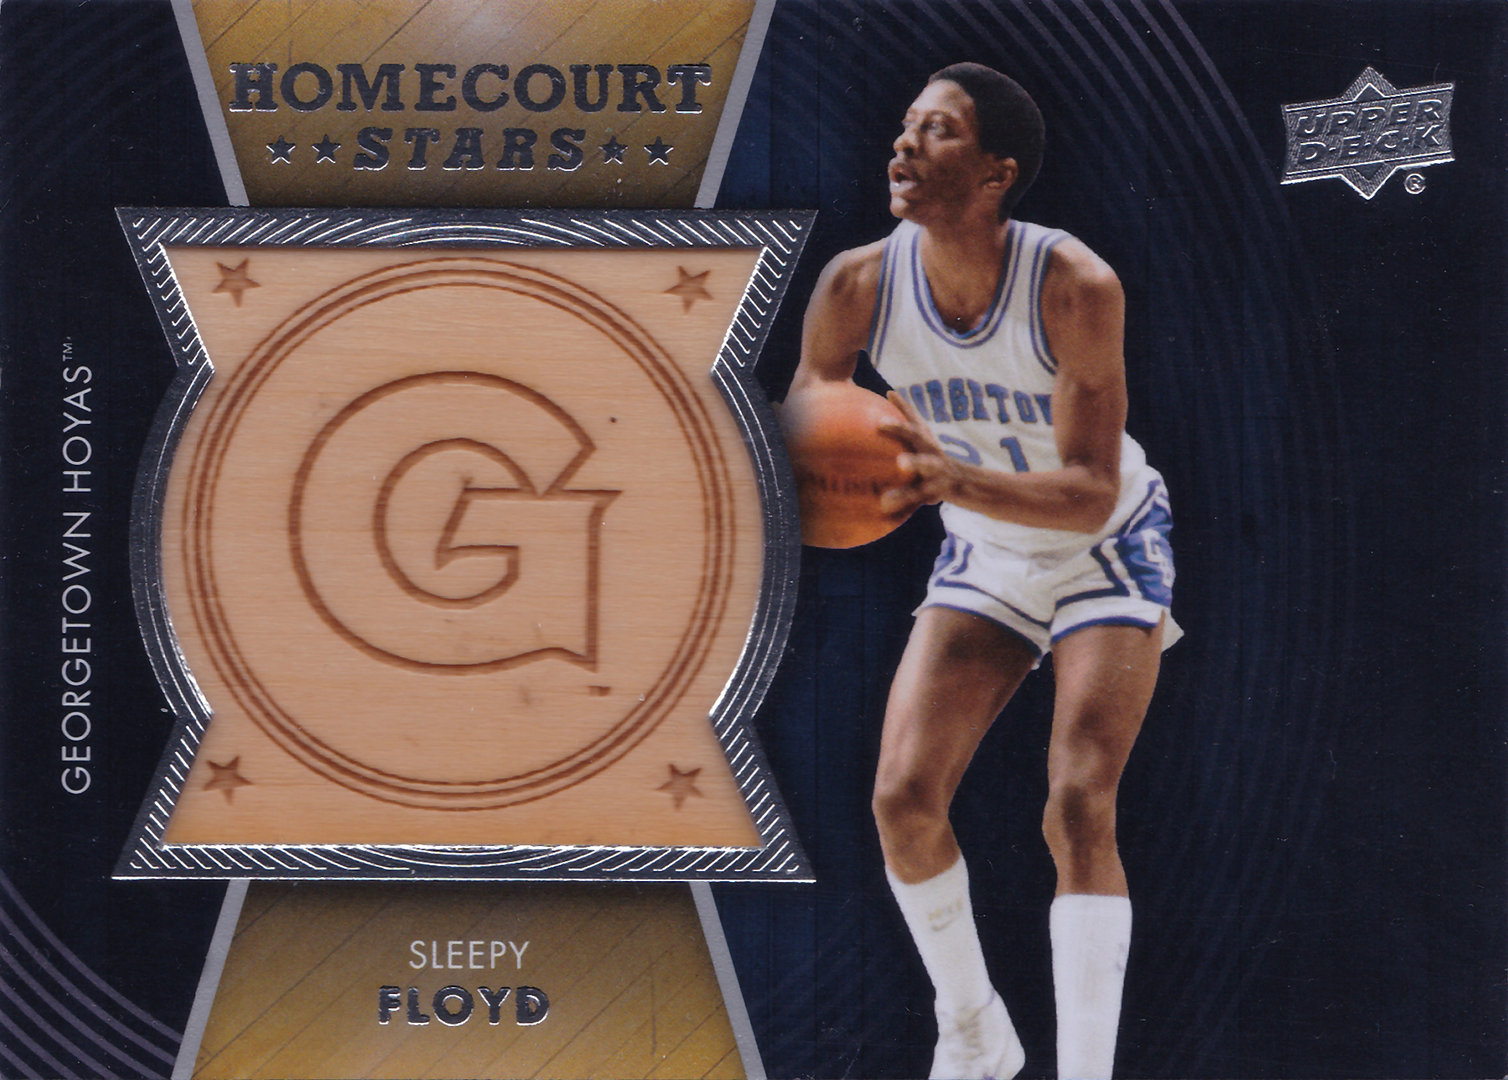 2014 15 Upper Deck Lettermen Home Court Stars HSSF Sleepy Floyd